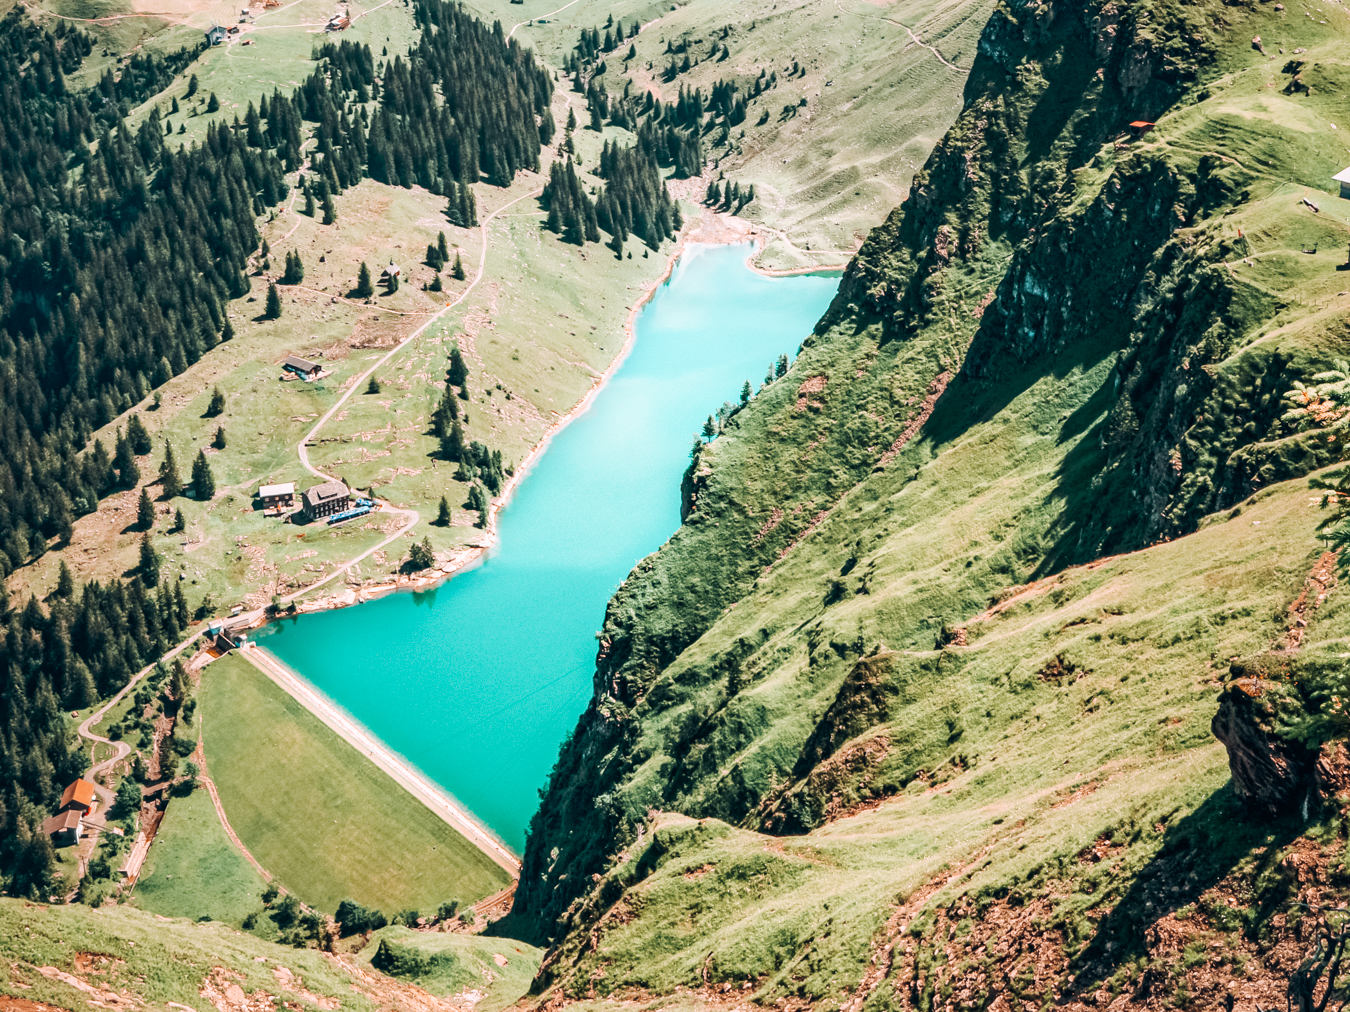 Bannalpsee from above